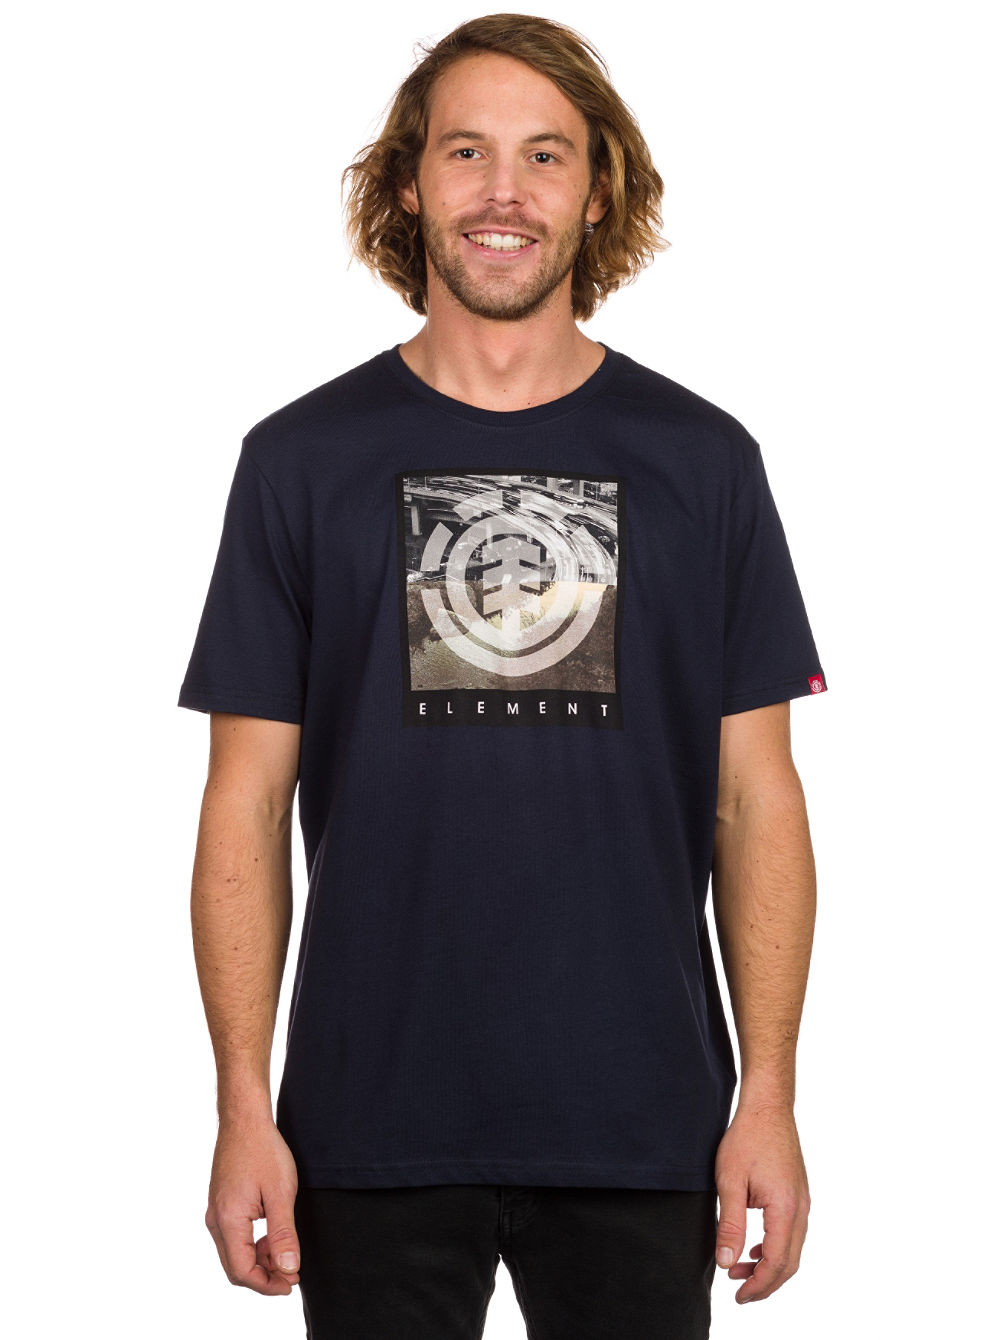 Buy element flow t shirt online at blue tomato